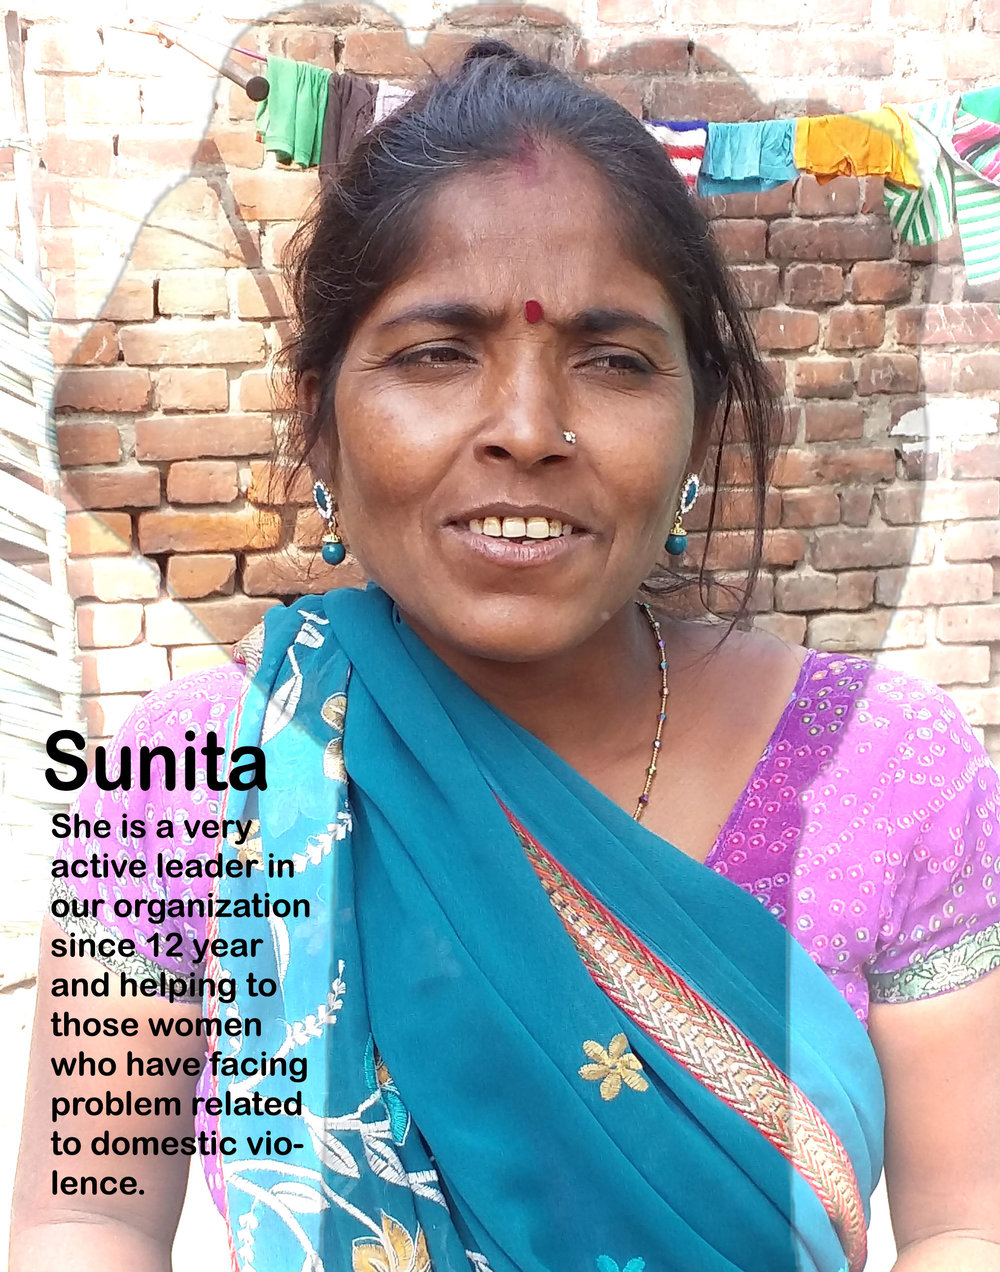 Sunita women human right defender-----.jpg